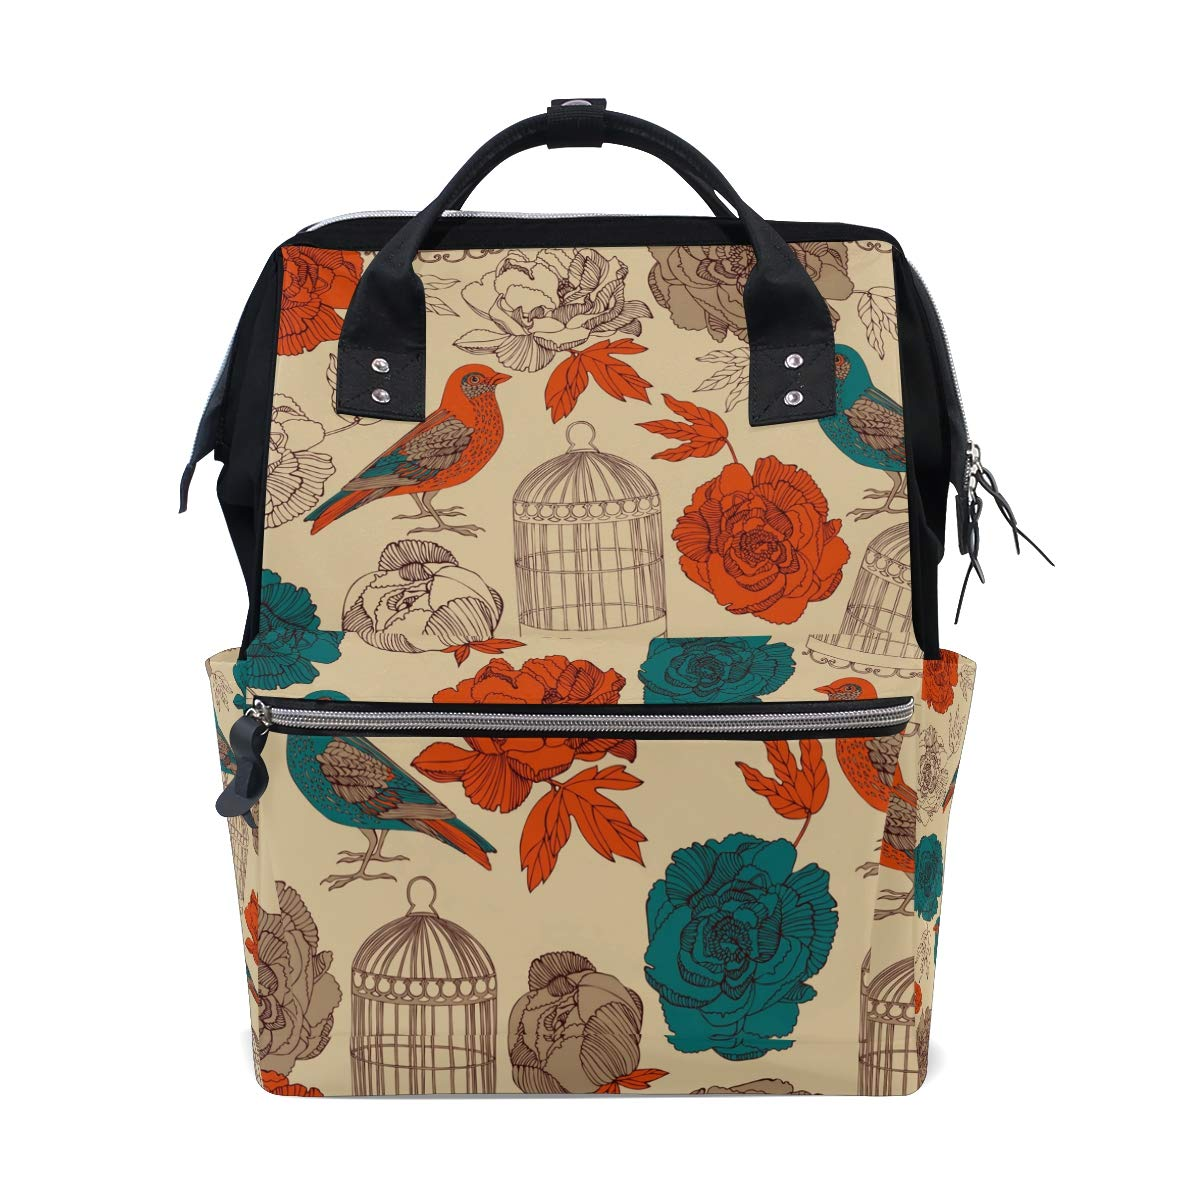 TropicalLife Retro Flower Bird Diaper Backpack Large Capacity Baby Bags Multi-Function Zipper Casual Travel Backpacks for Mom Dad Unisex